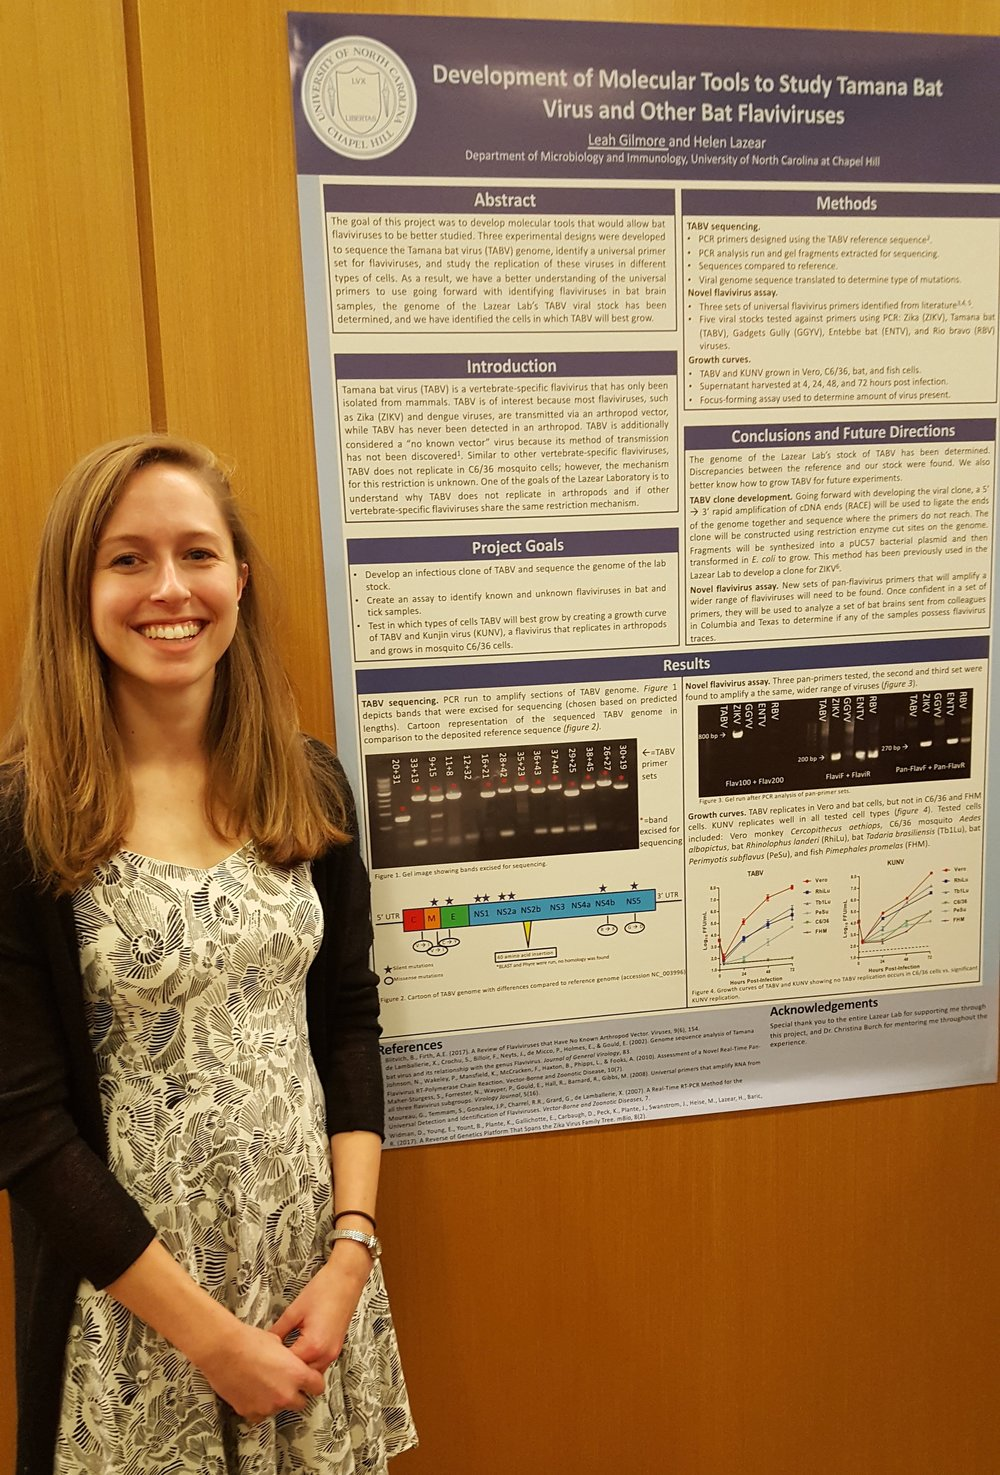 leah presents her project developing tools to study tamana bat virus,